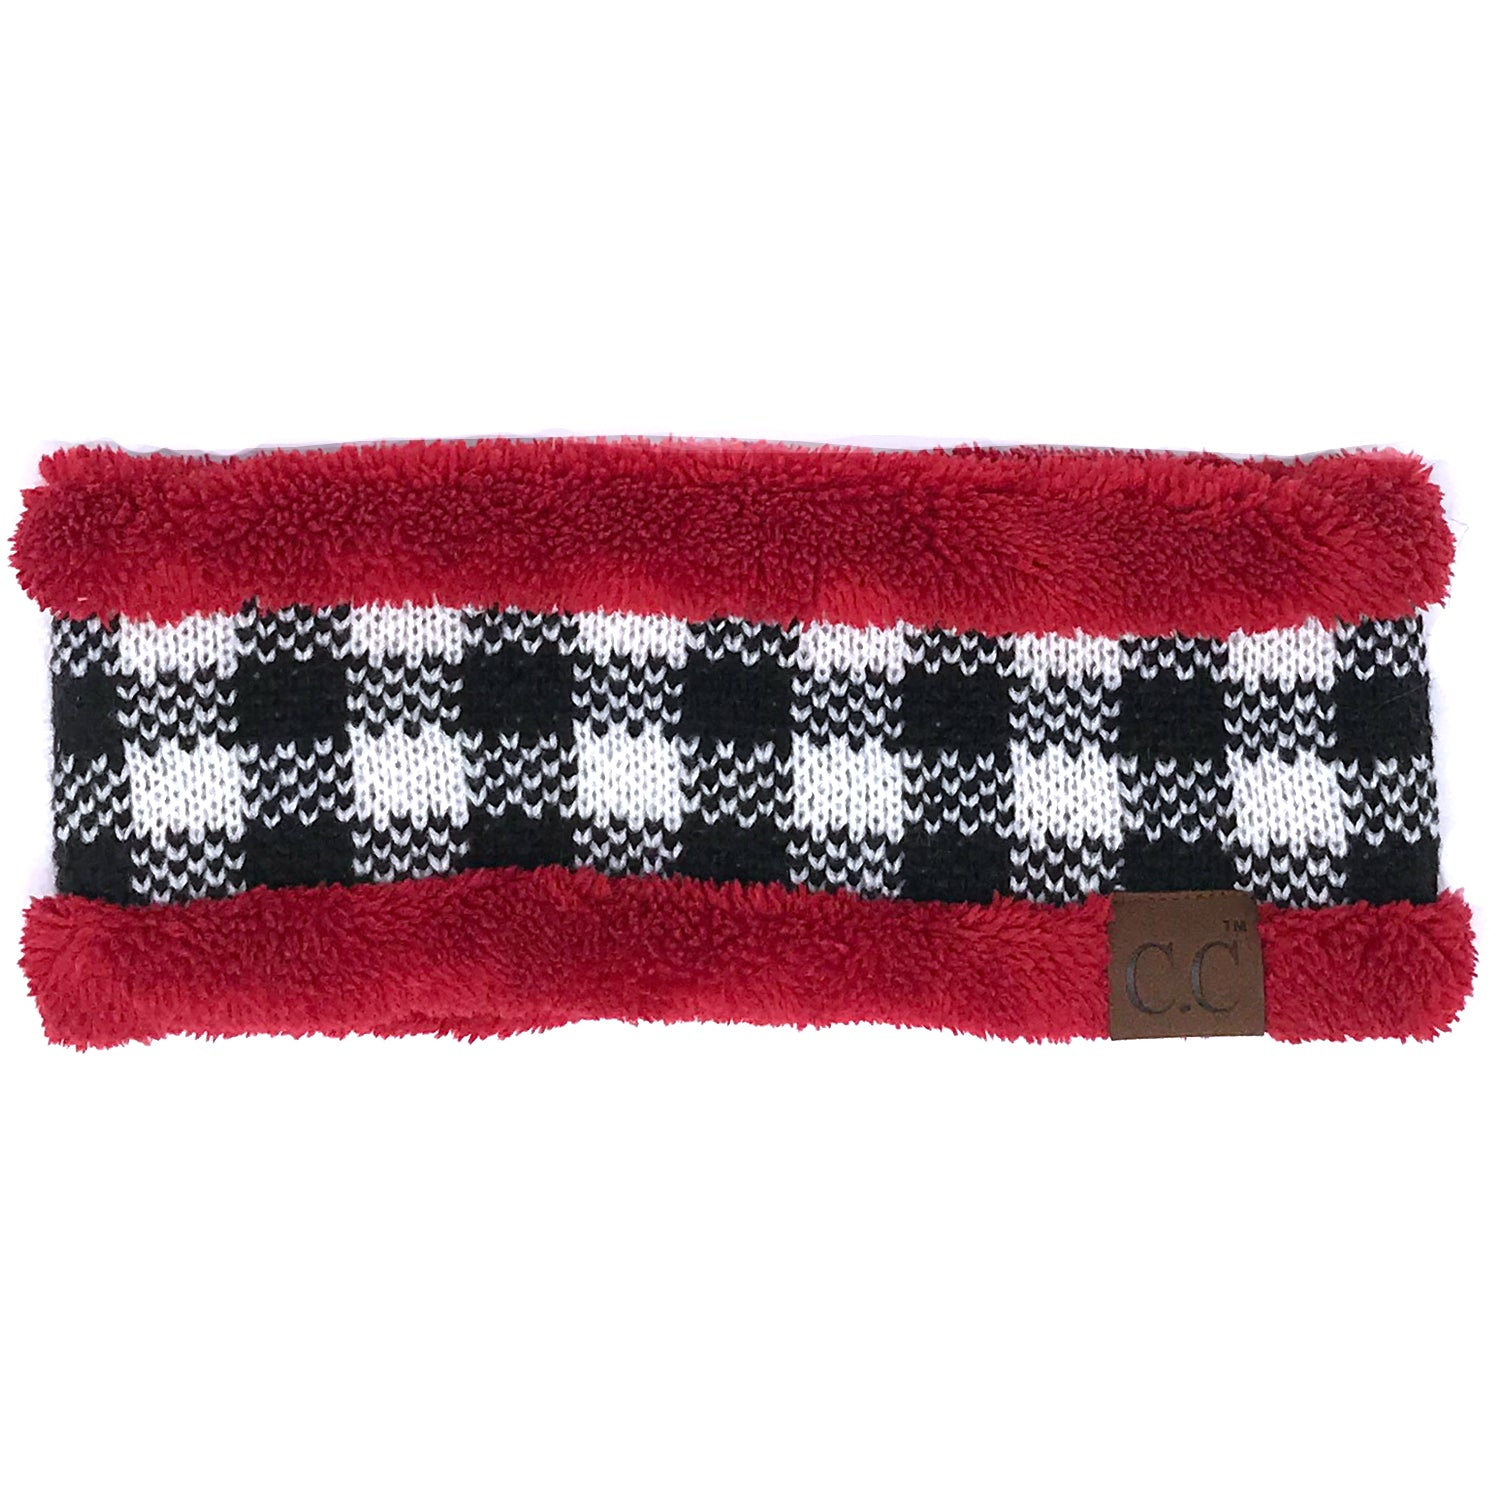 HW-17 BUFFALO PLAID RED WHITE/BLACK